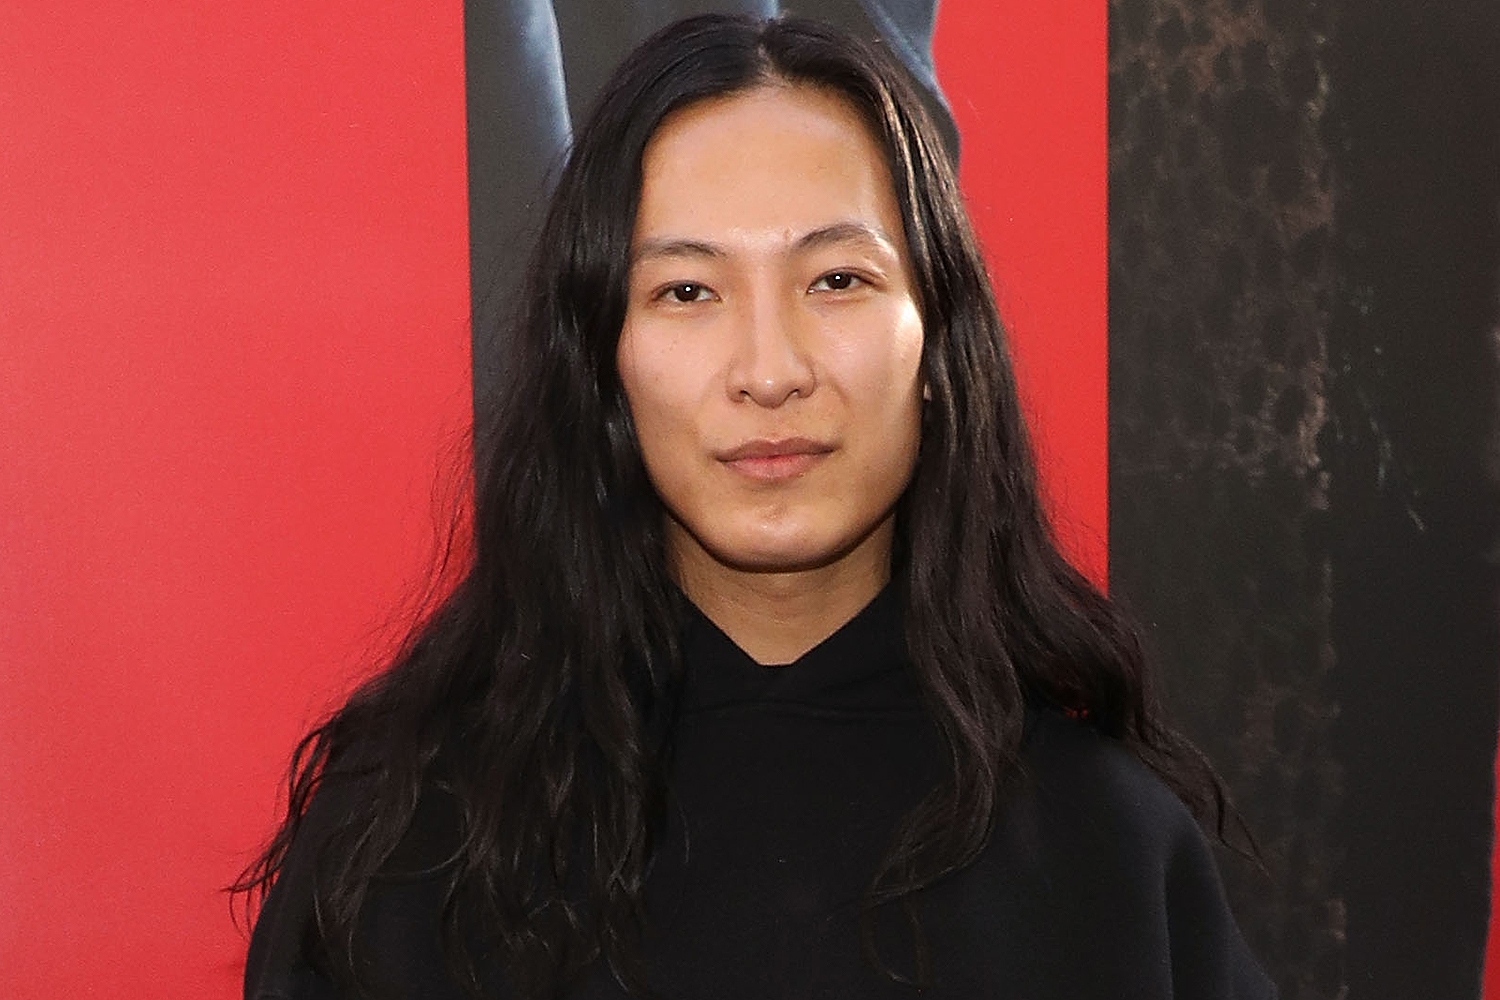 alexander-wang-accused-of-sexual-assault-by-multiple-people-in-the-industry